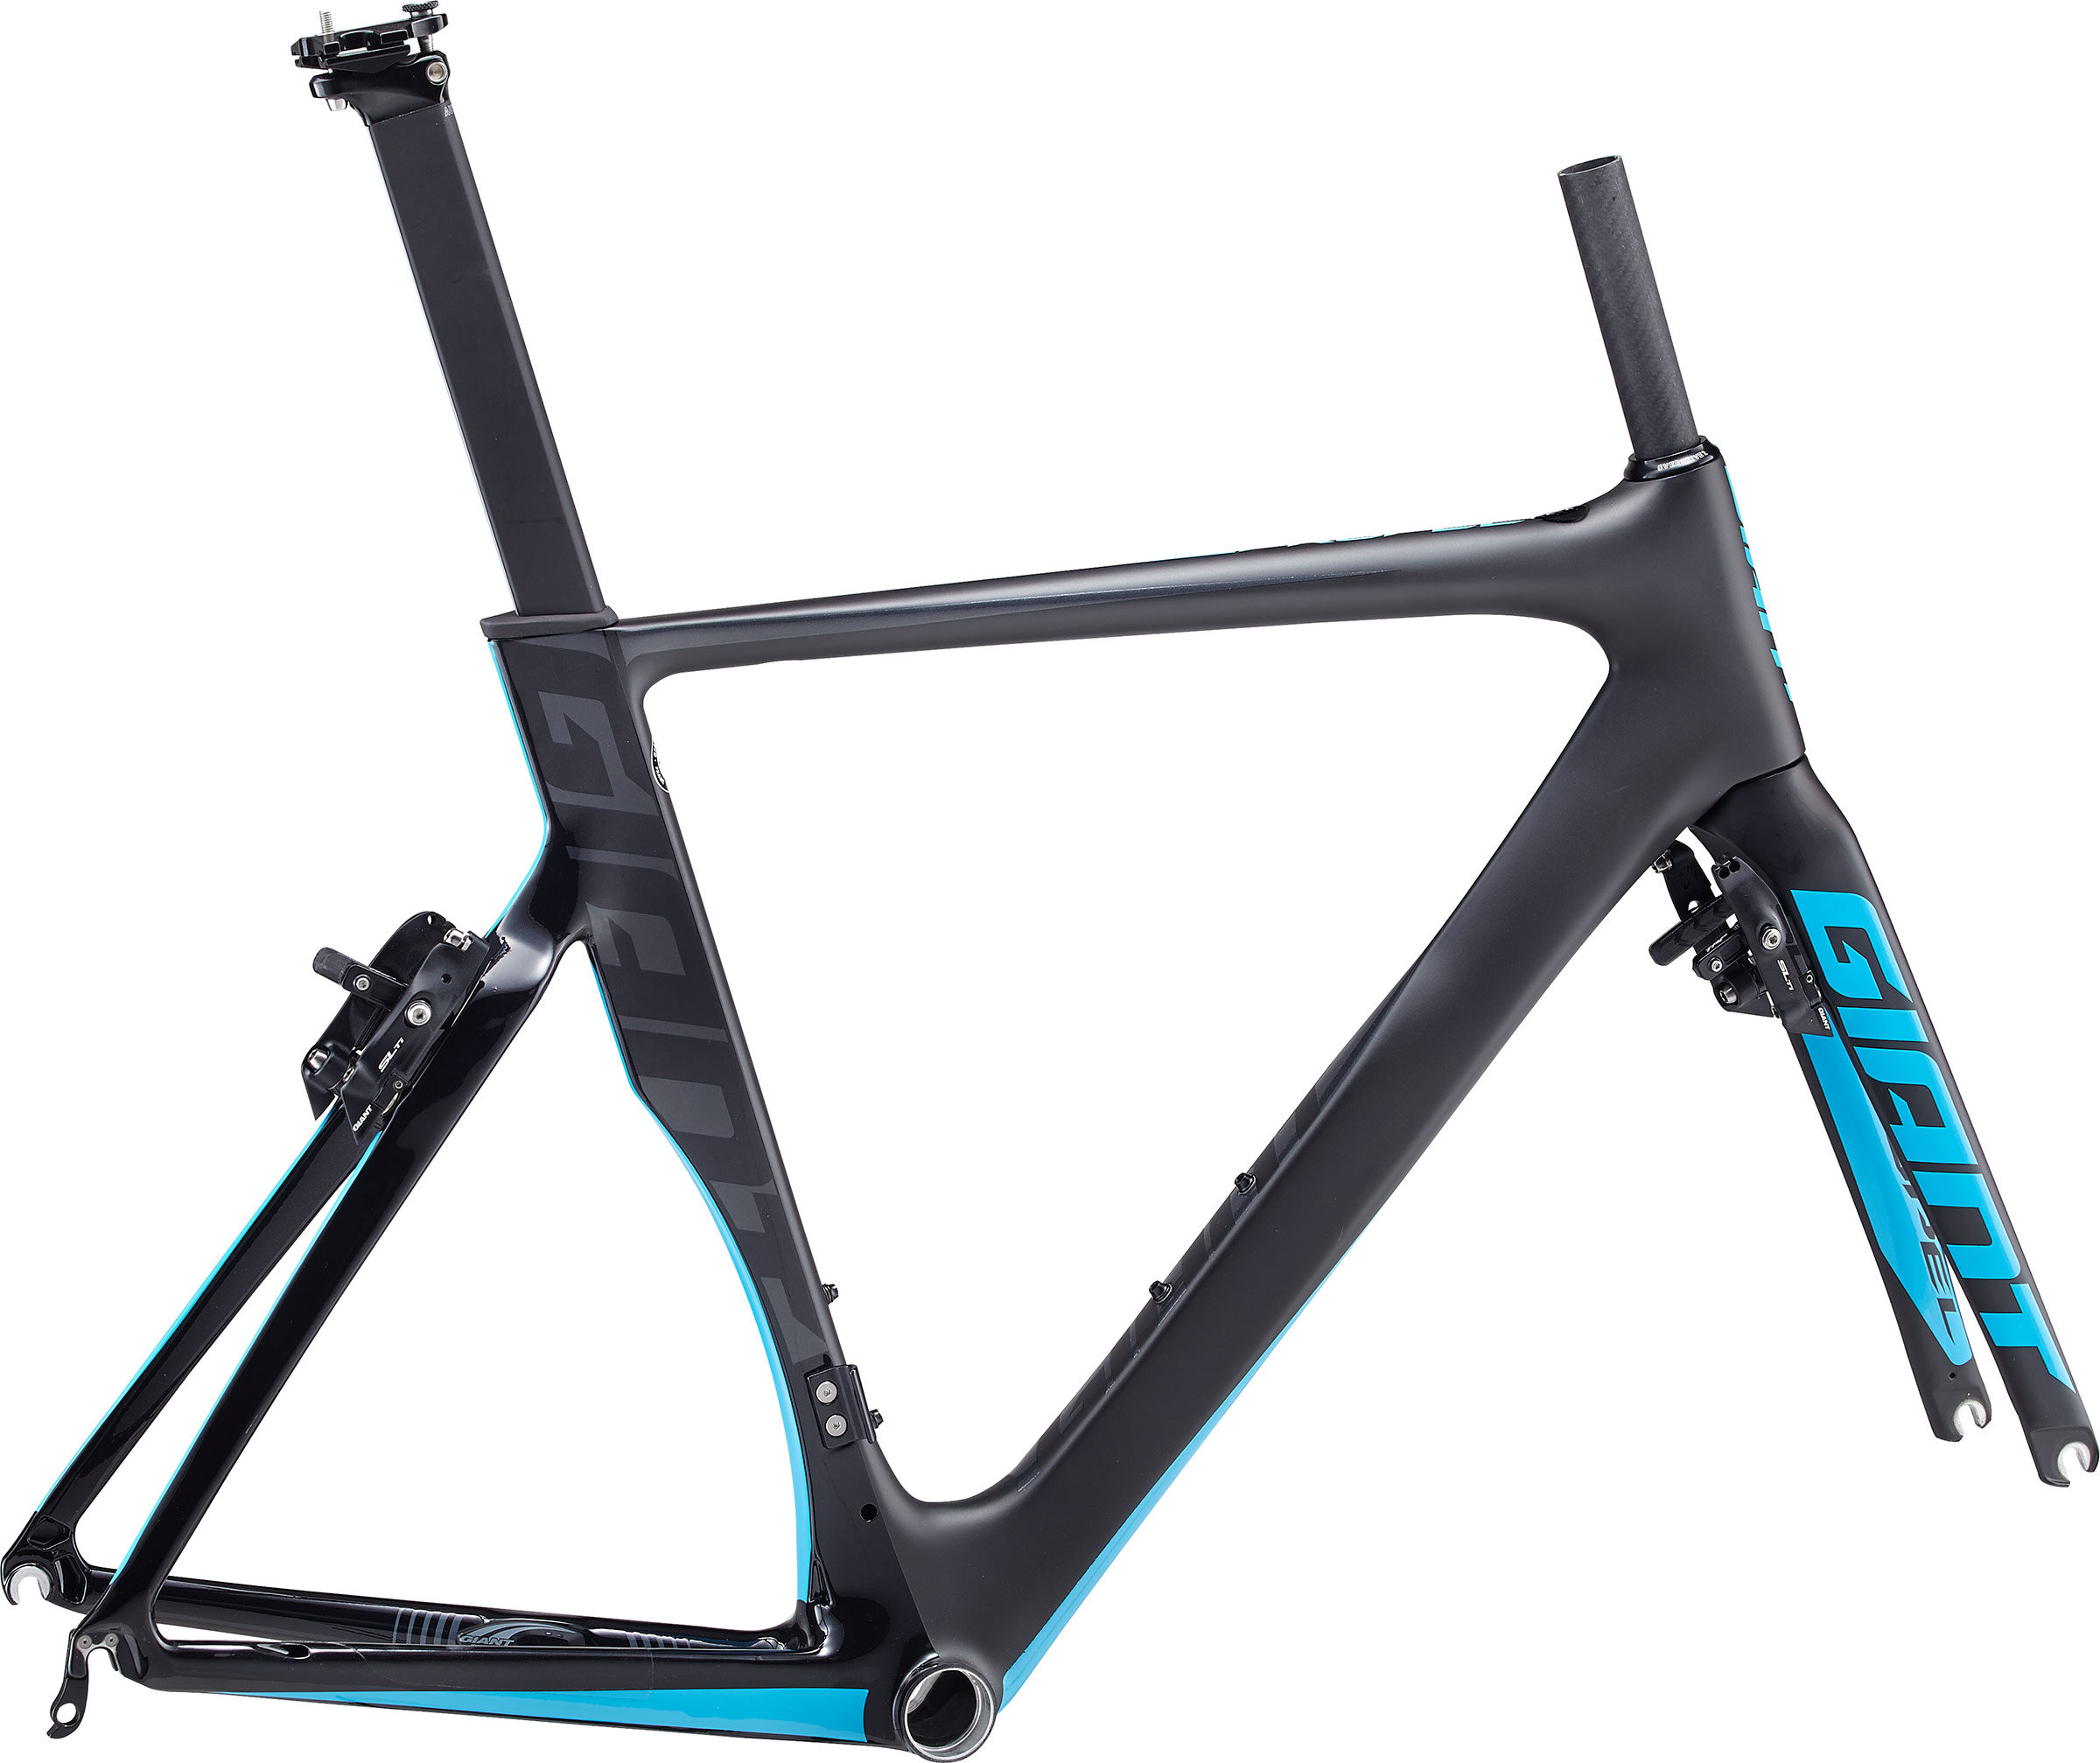 3ba1b234692 Giant Propel Advanced Pro Frameset - Wheel World Bike Shops - Road ...